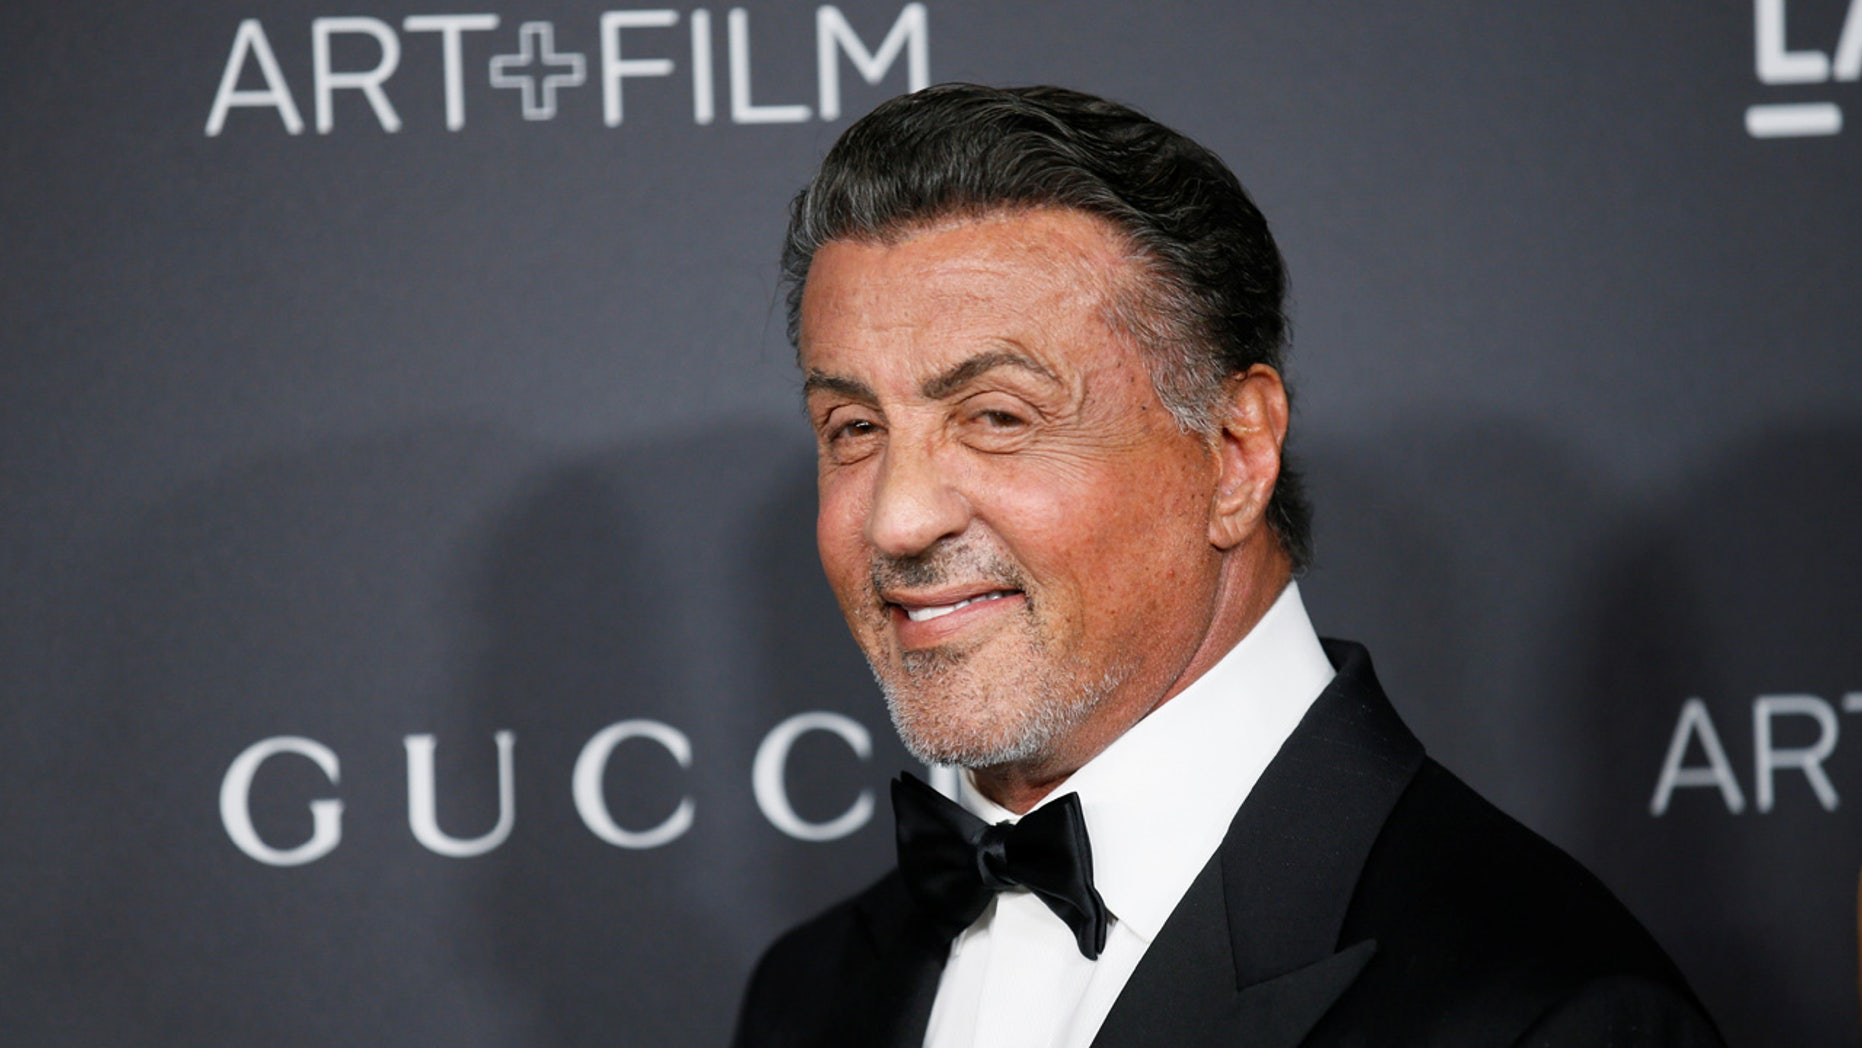 Sylvester Stallone recently teased a fifth 'Rambo' film on social media.